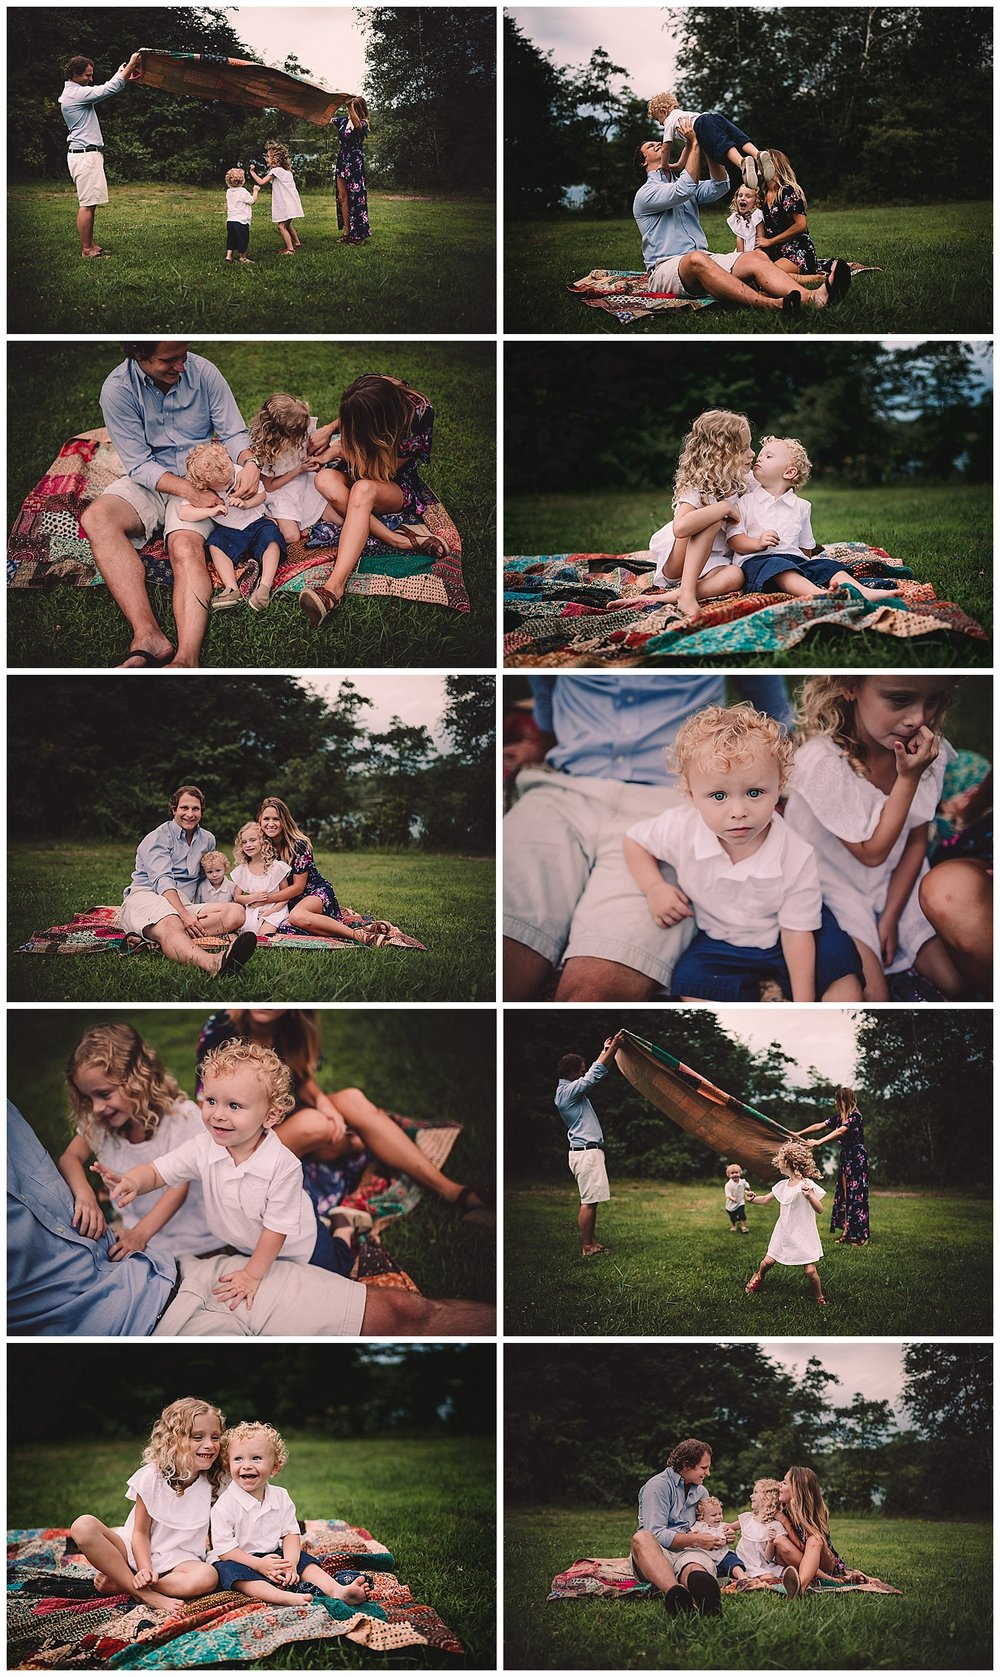 NEPA Family Photographer in Lewisburg, Pennsylvania